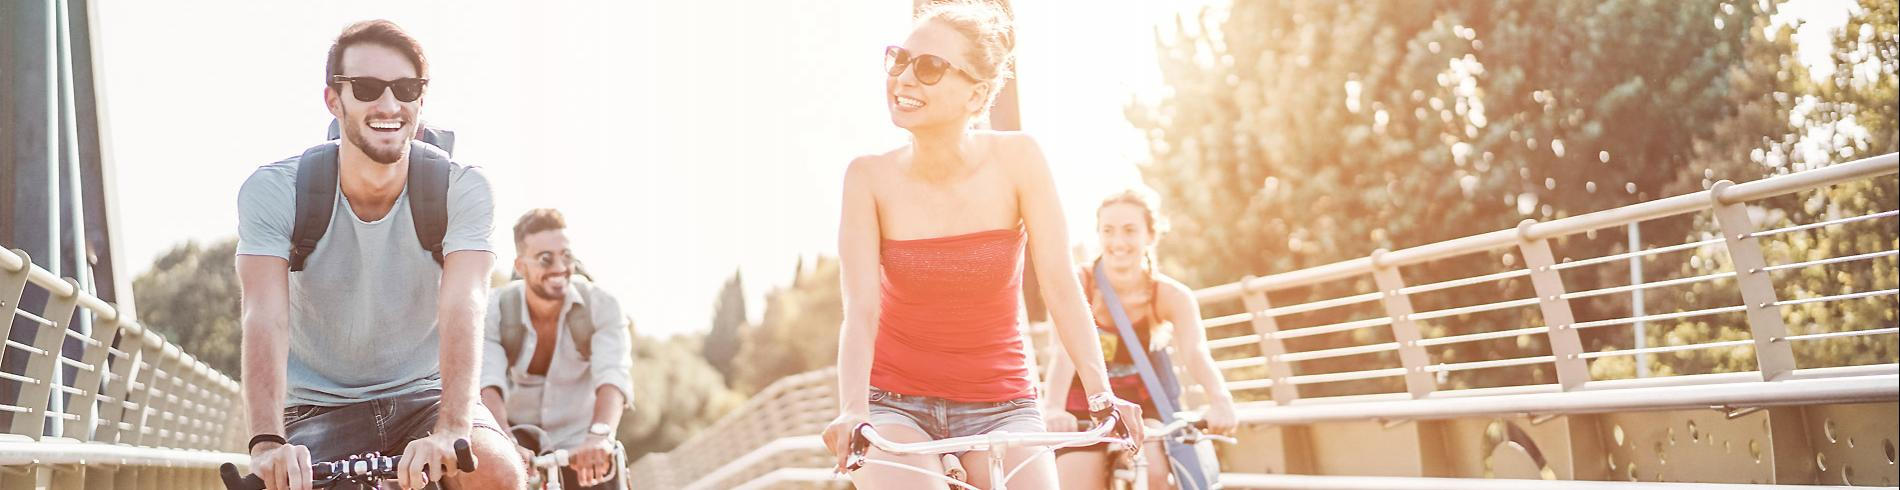 Happy people on bikes on a sunny day